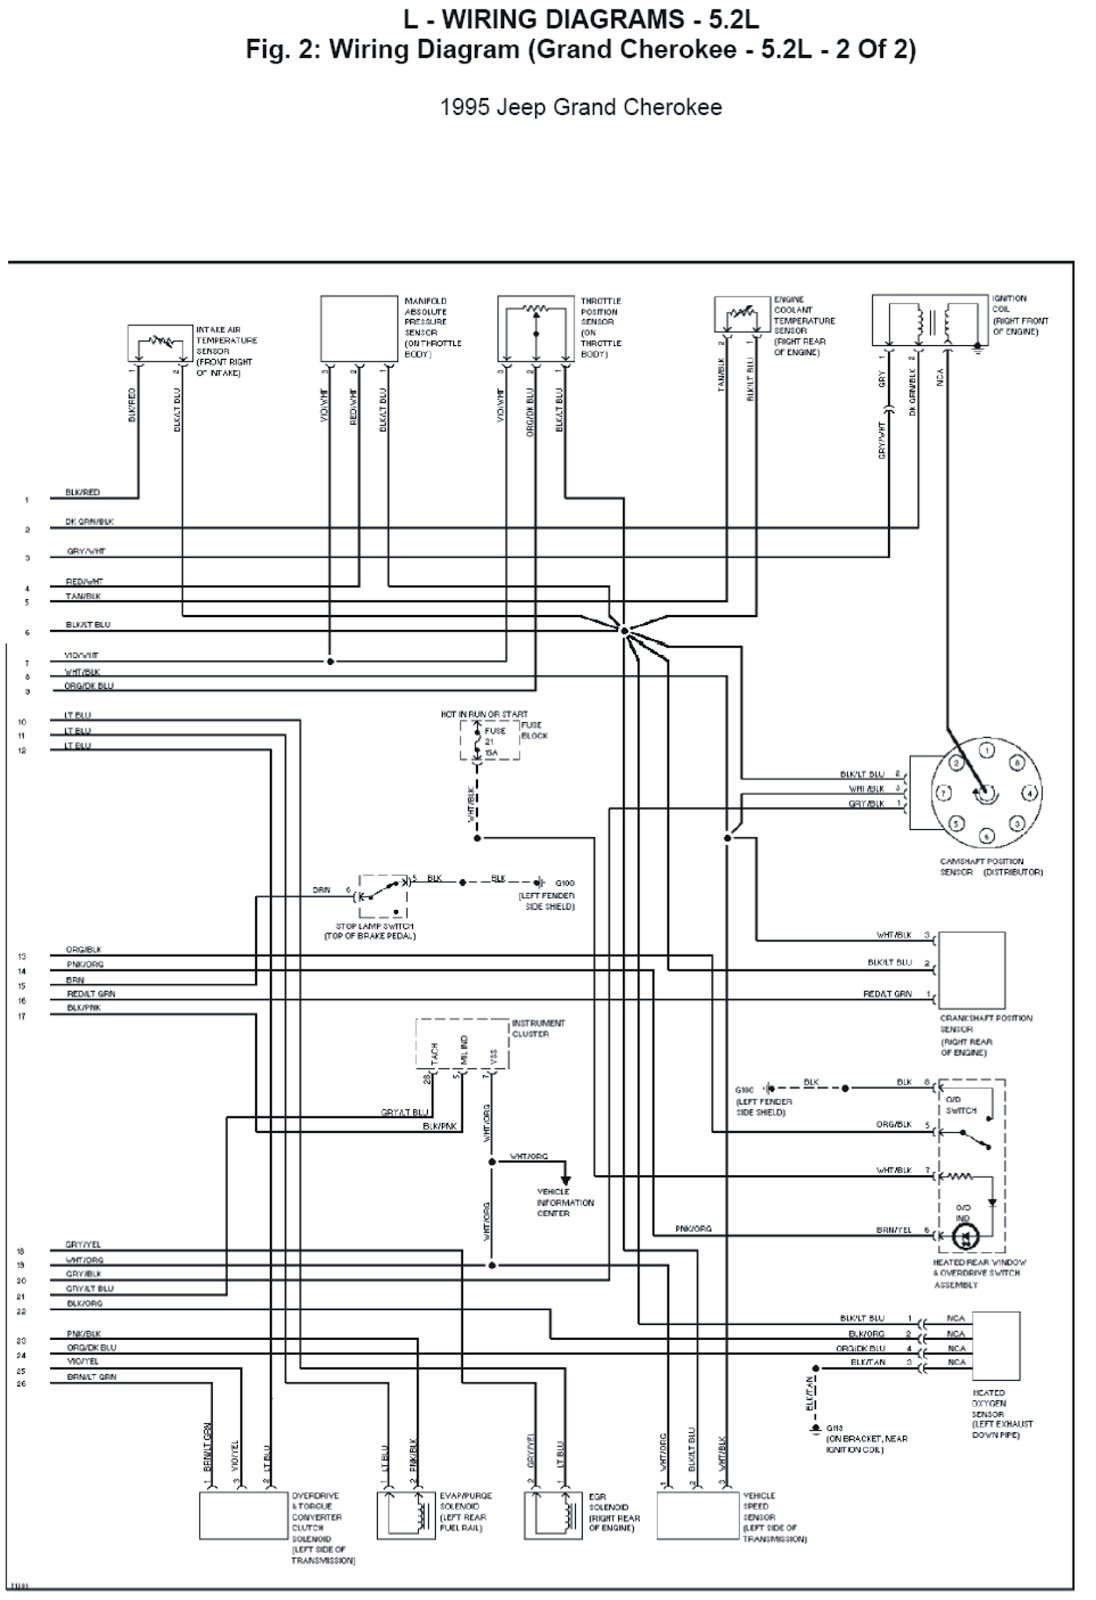 1995 jeep cherokee radio wiring diagram